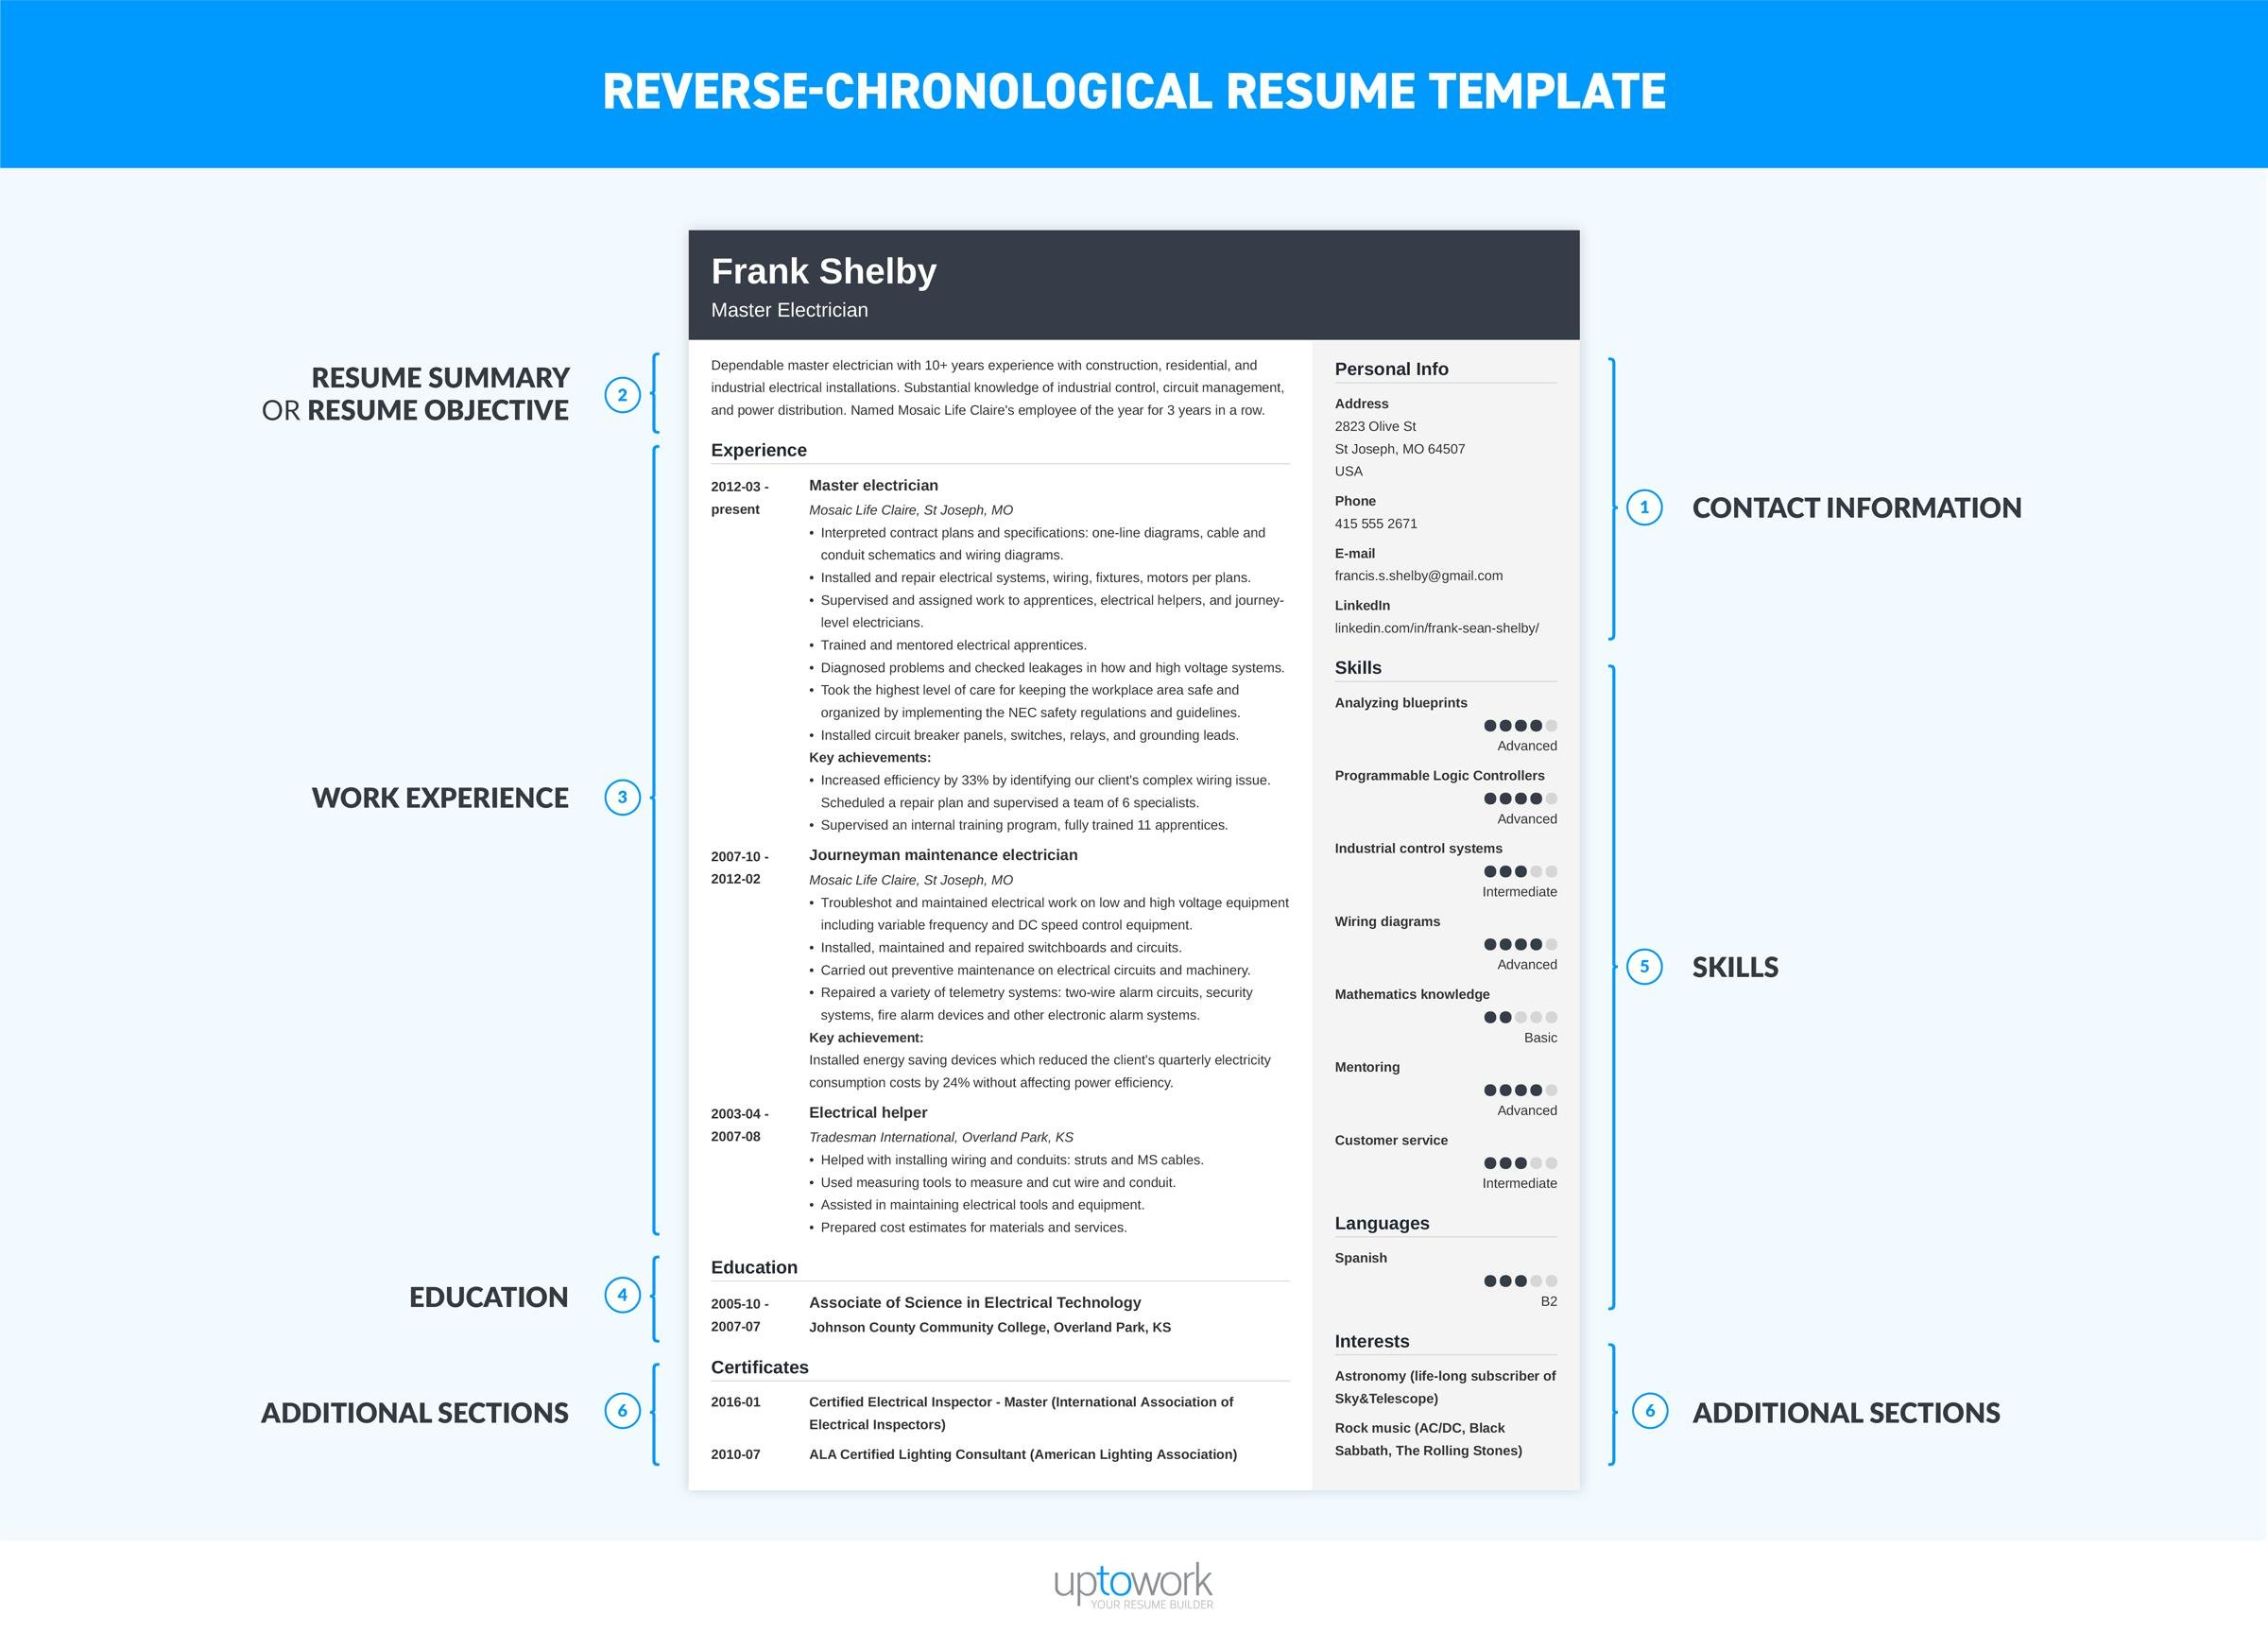 type up a resumes